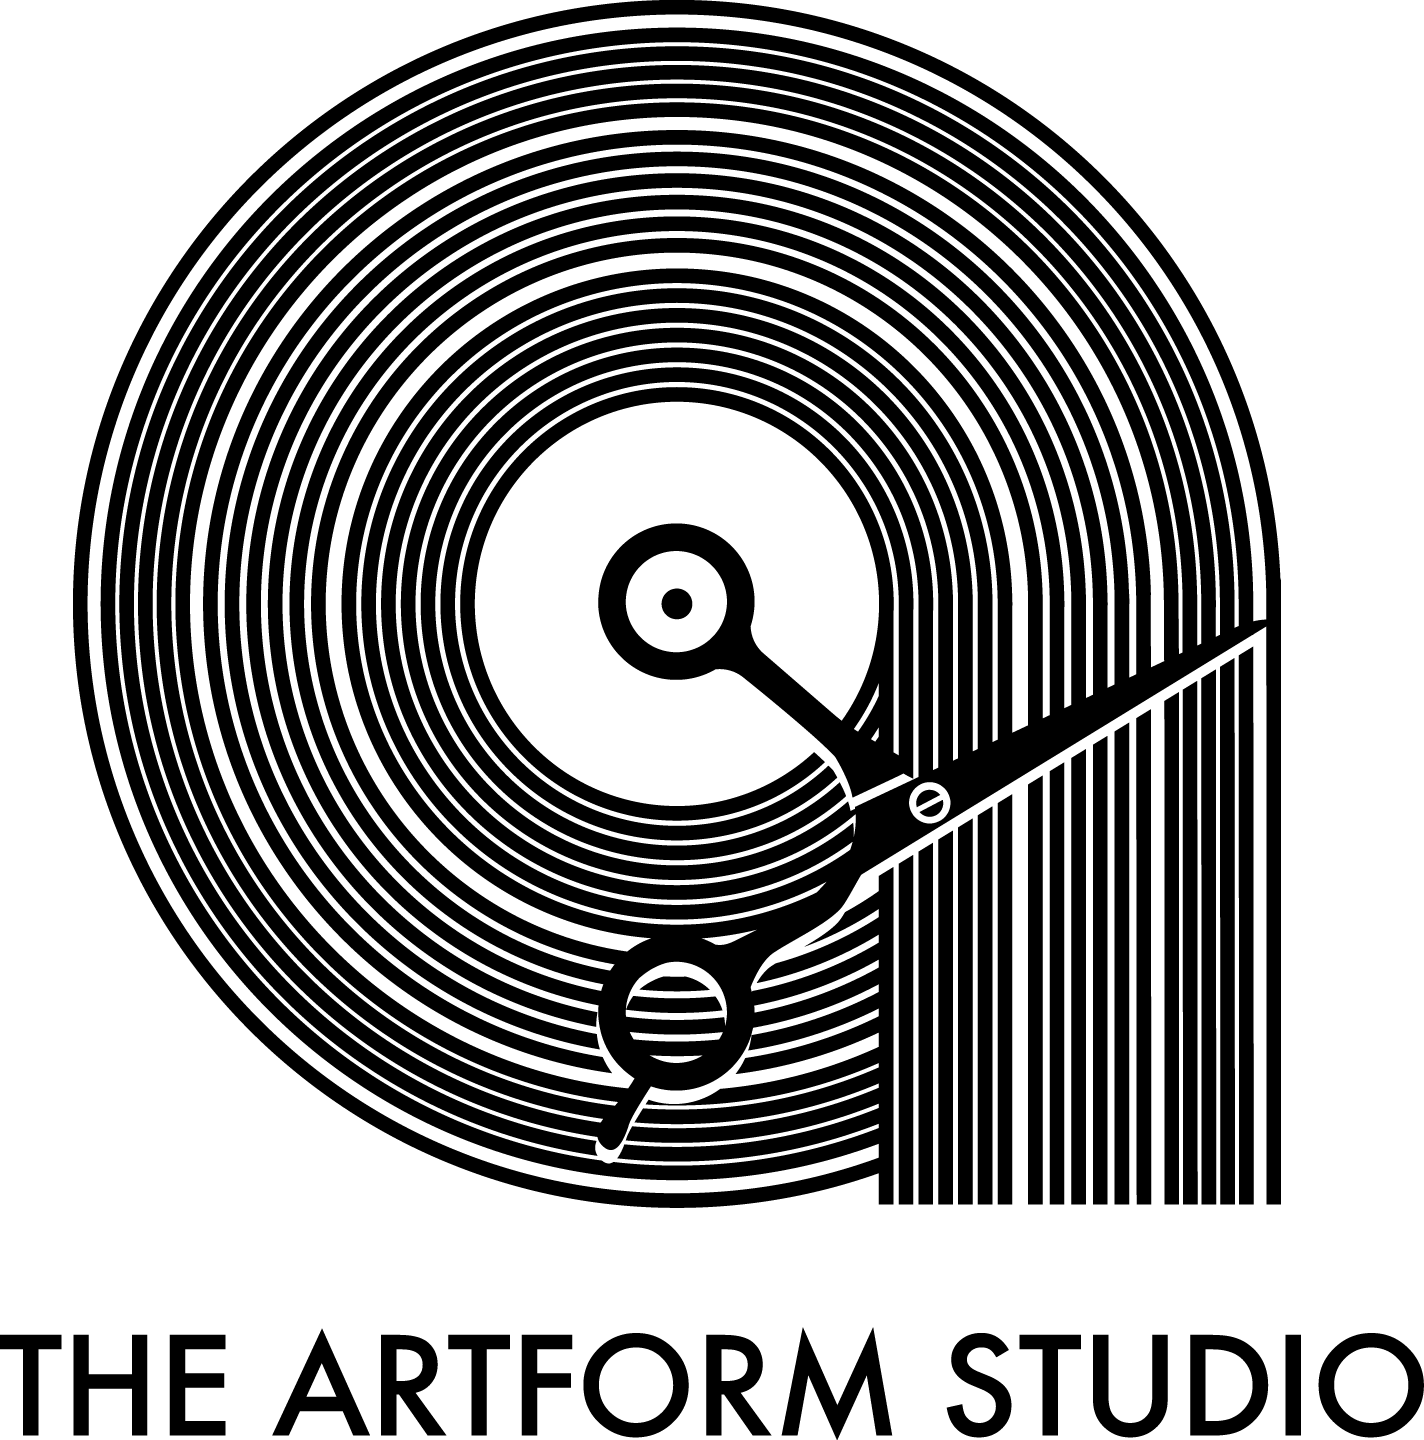 The Artform Studio